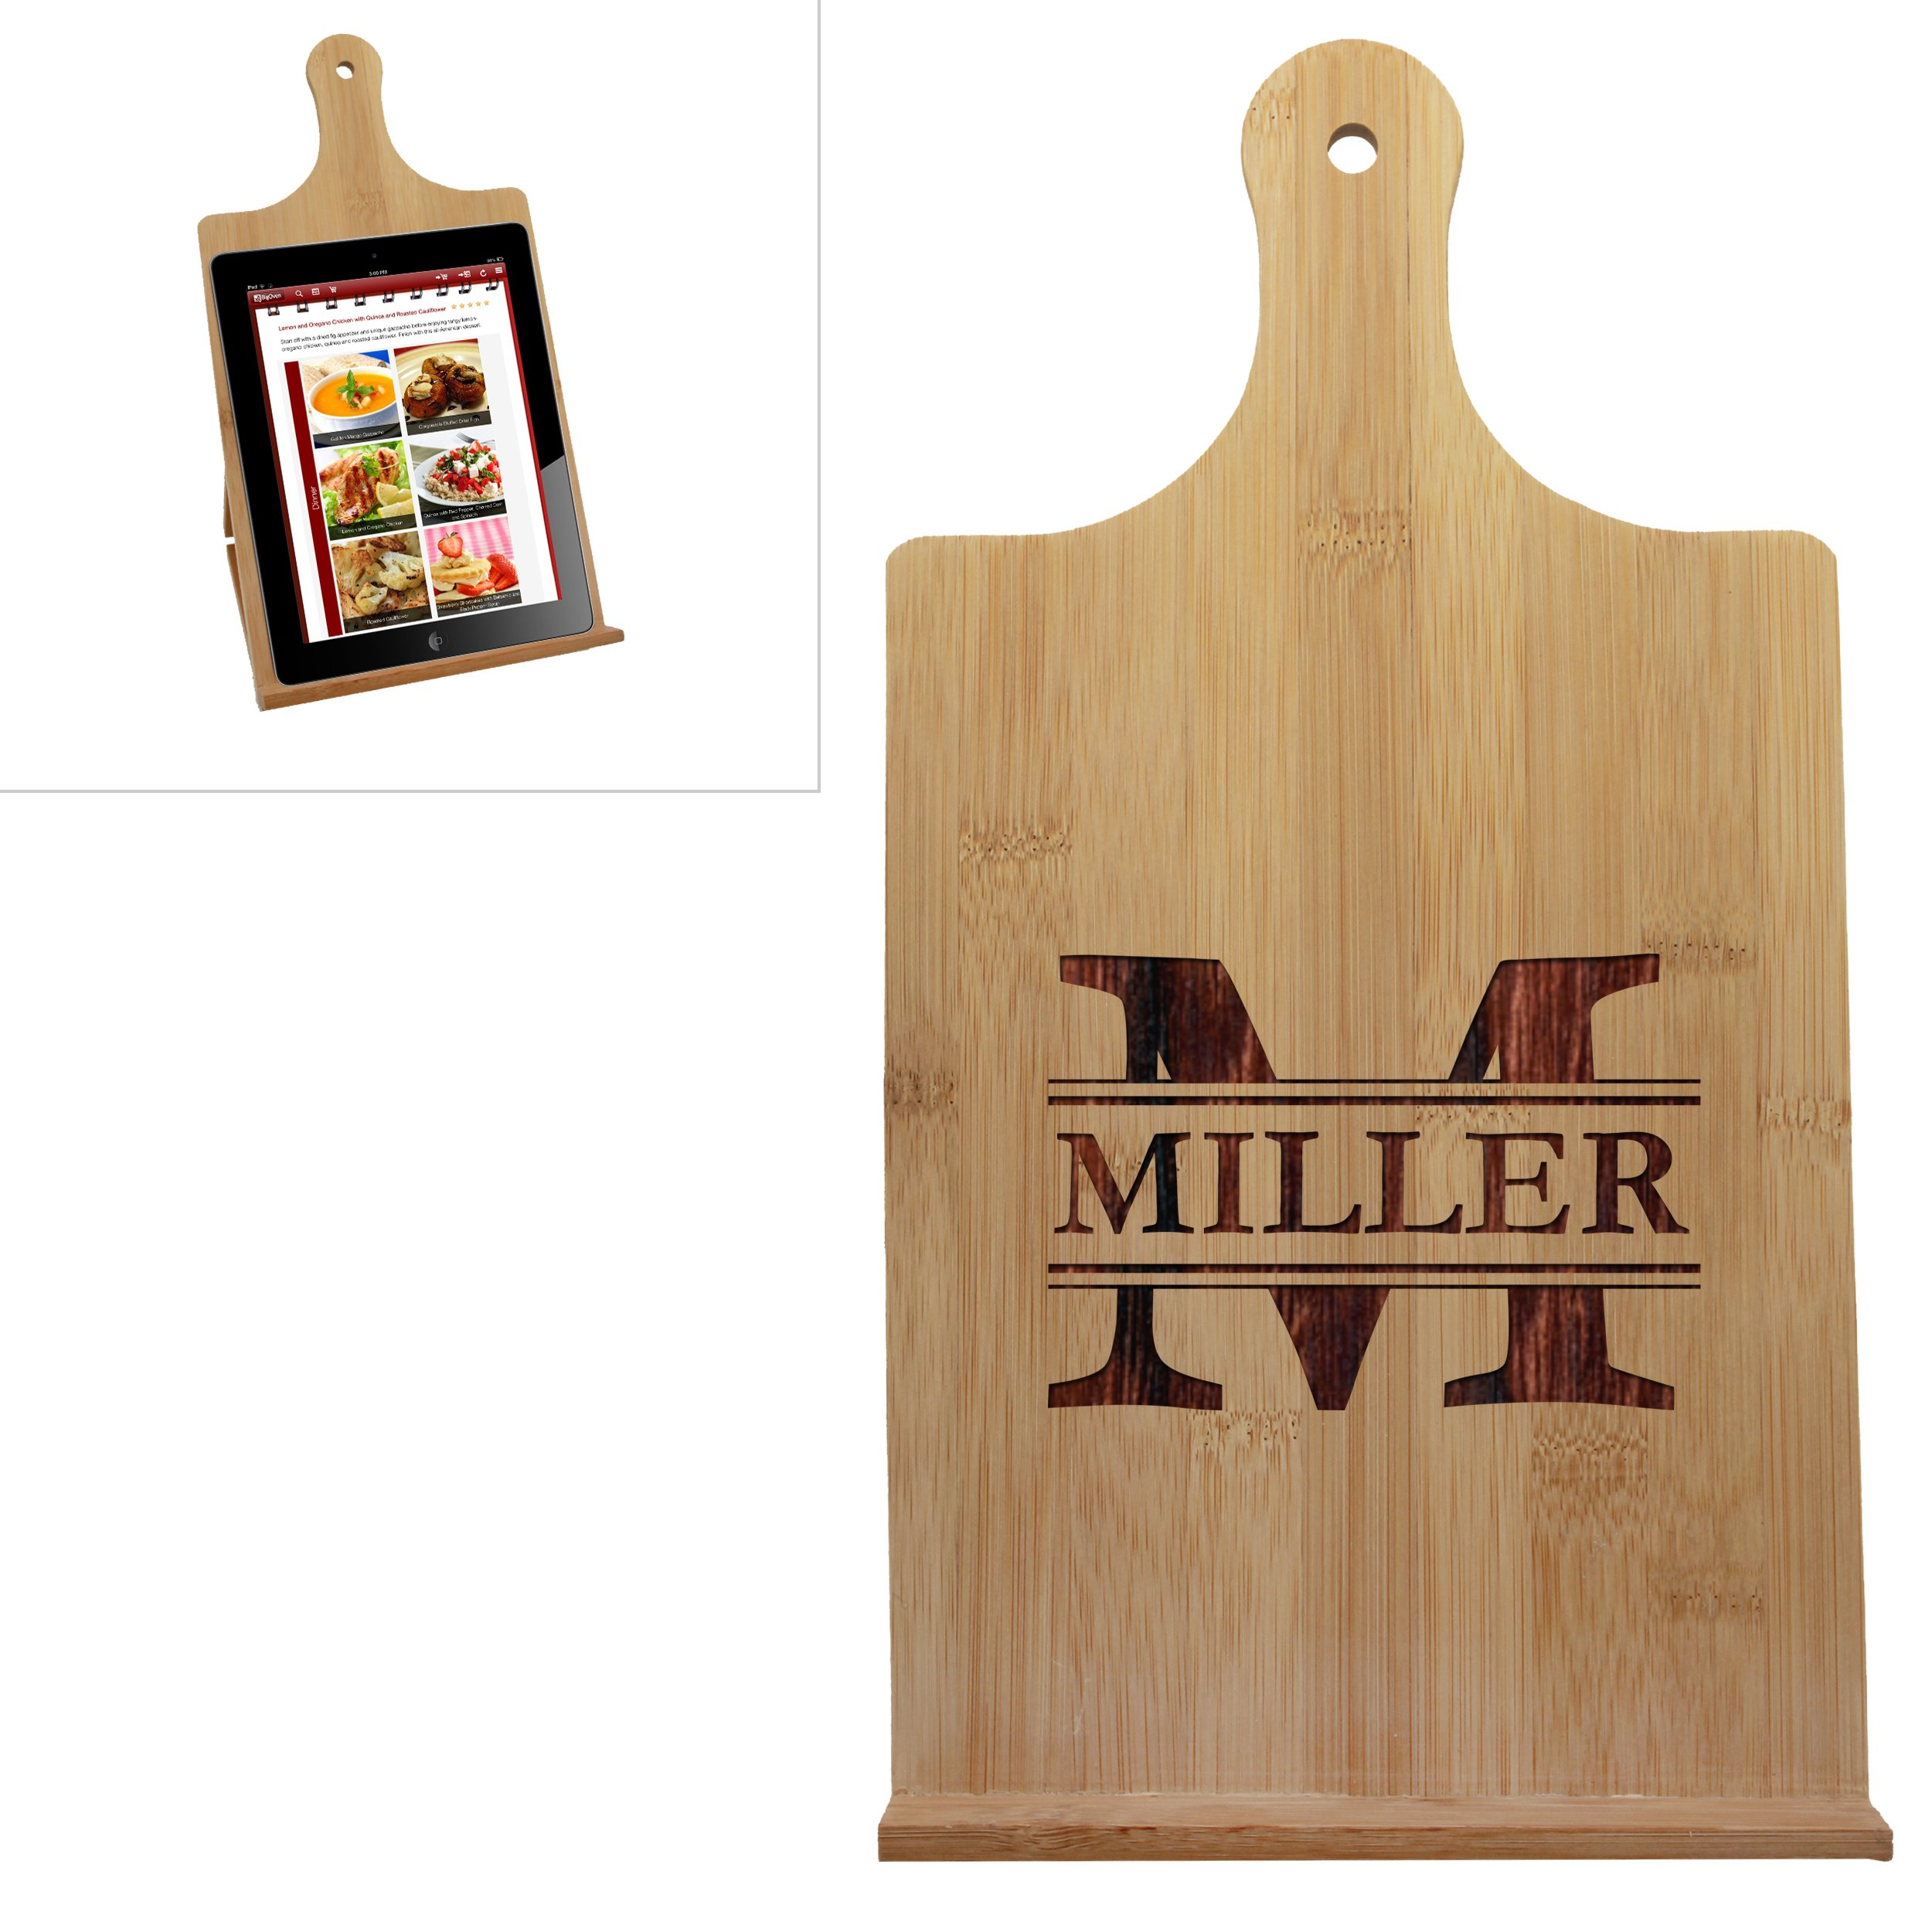 Custom Engraved Wood Tablet Book Stand - Personalized Wooden Easel Holder (Vertical - 7.25'' x 13.25'')